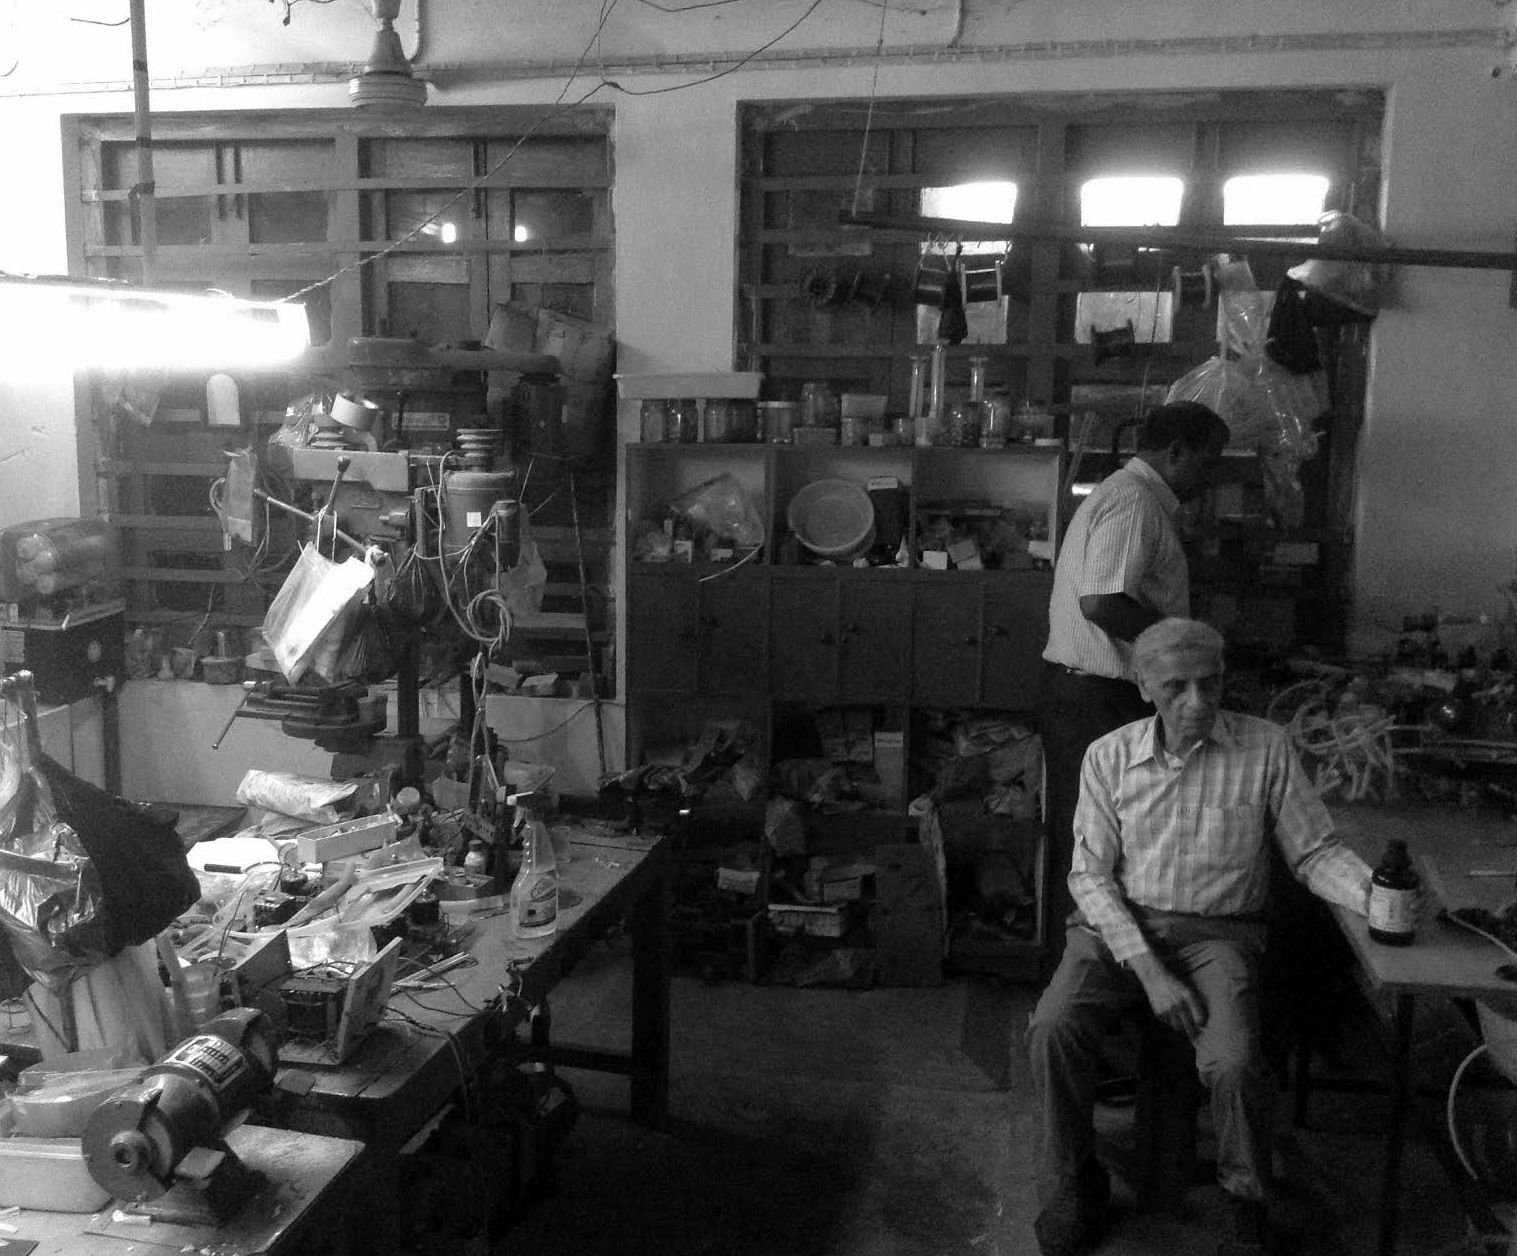 Prof. Sujoy Guha in his lab. Credit: Sohini Chattopadhyay